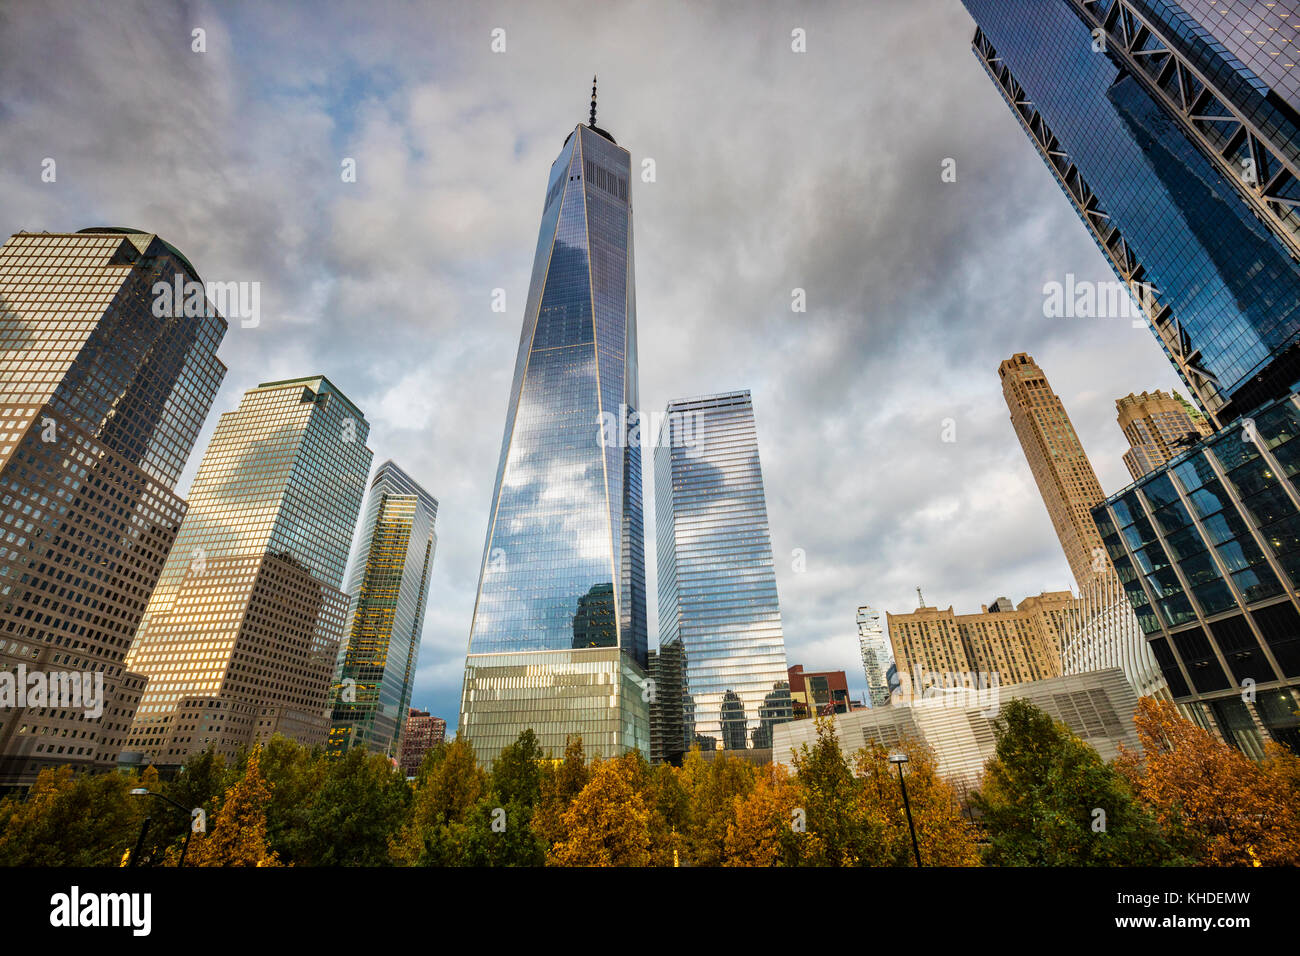 Freedom tower New York - Stock Image